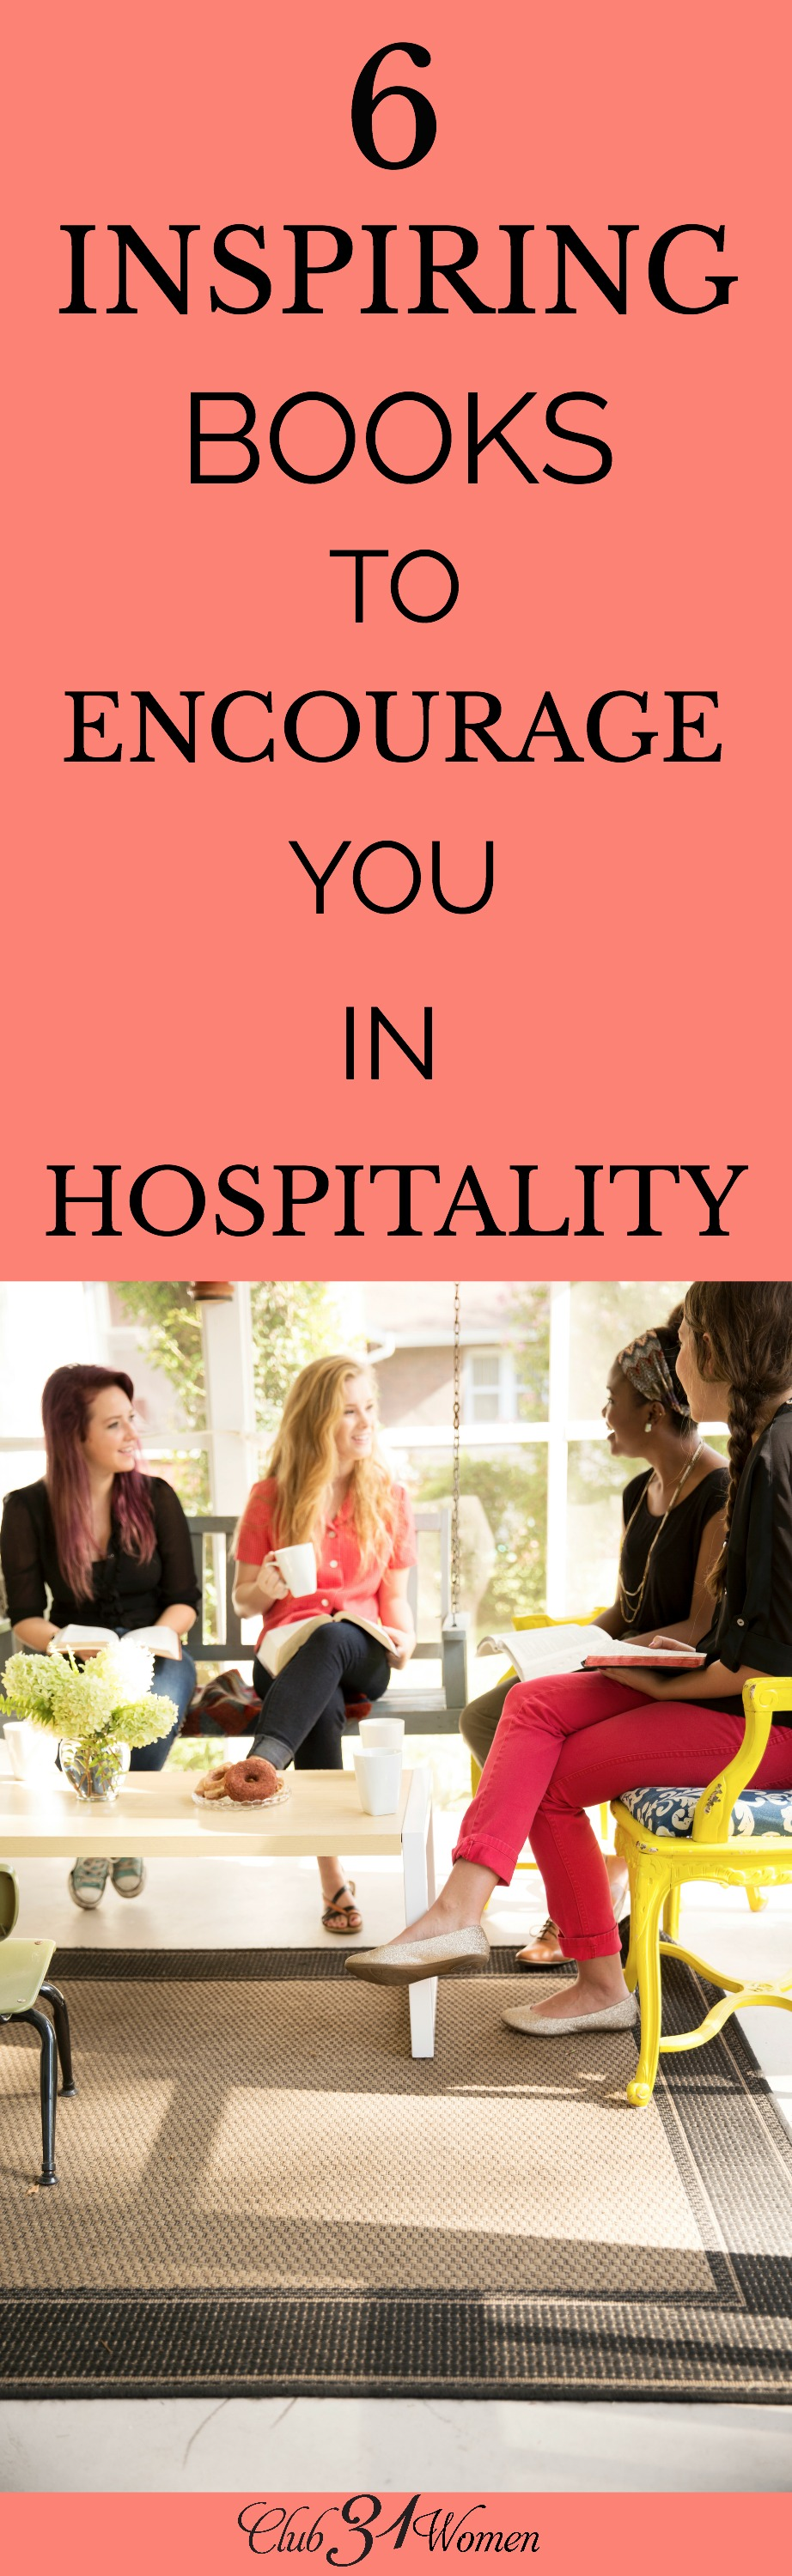 Hospitality can feel overwhelming and out of reach for those who feel they don't have a gift for it. But you don't need to be gifted to show love! via @Club31Women